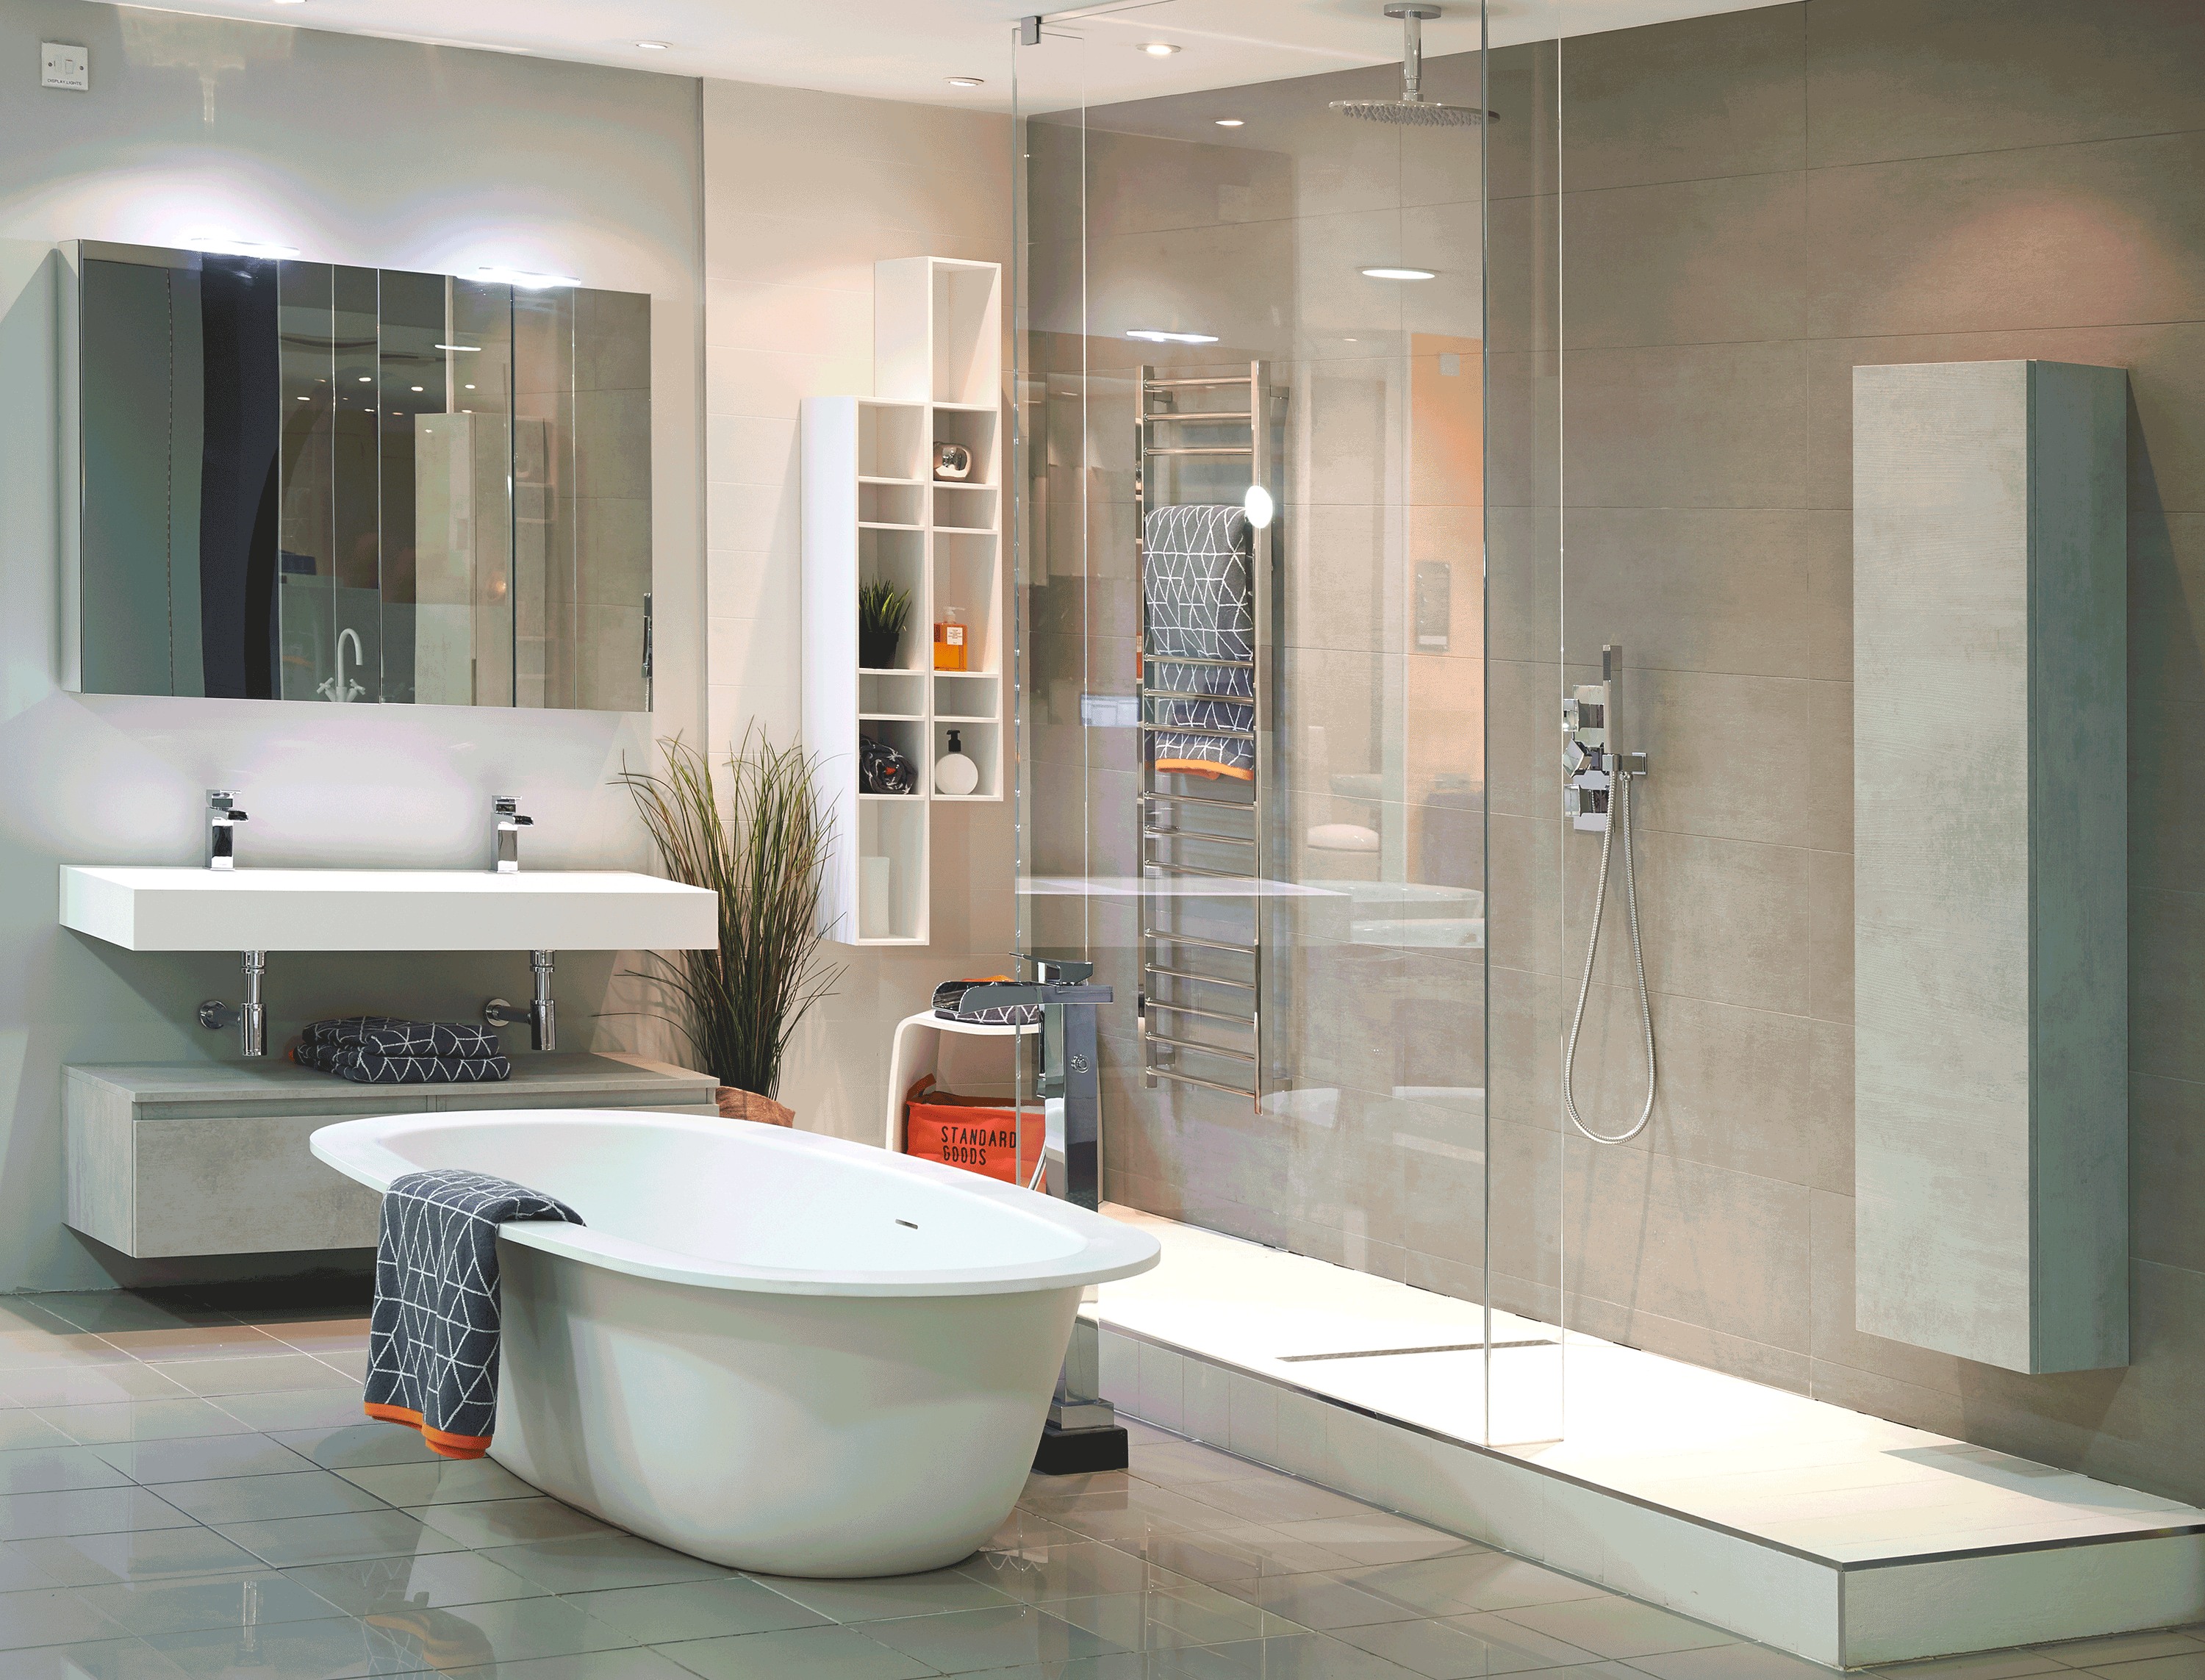 find local bathroom showrooms and retailers london. hart waterloo bathroom showroom, our flagship store and the most exciting showroom in uk. find local showrooms retailers london i